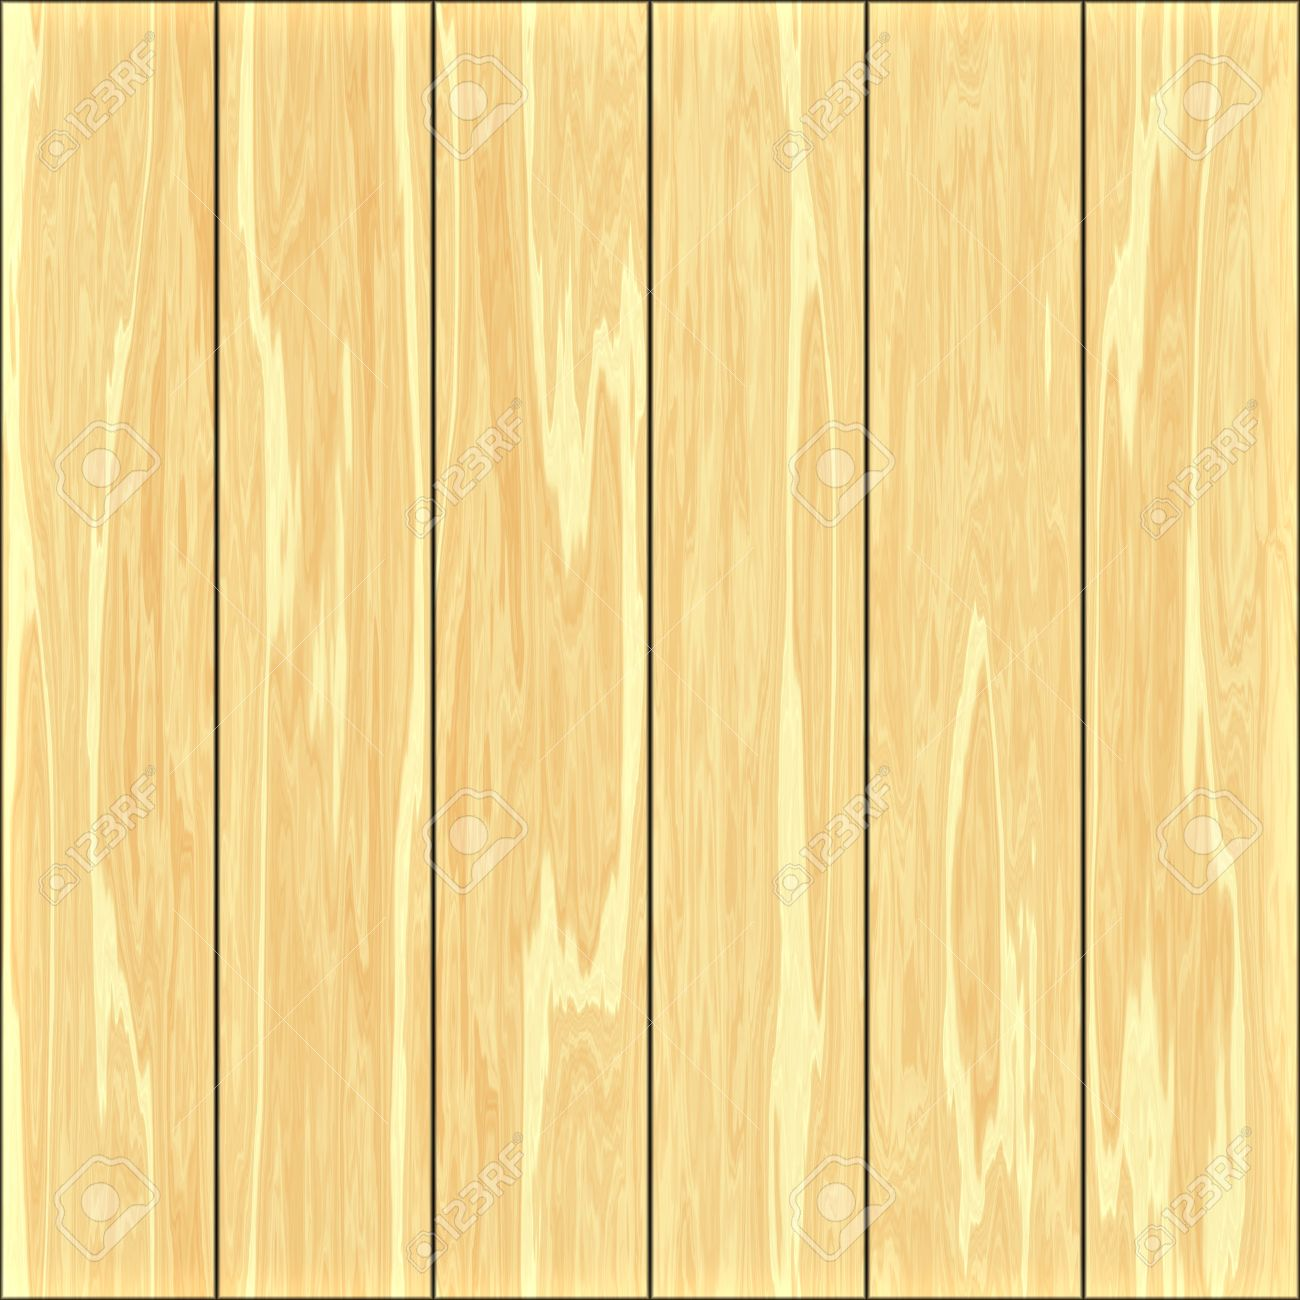 a large sheet of wooden floor or wall panelling